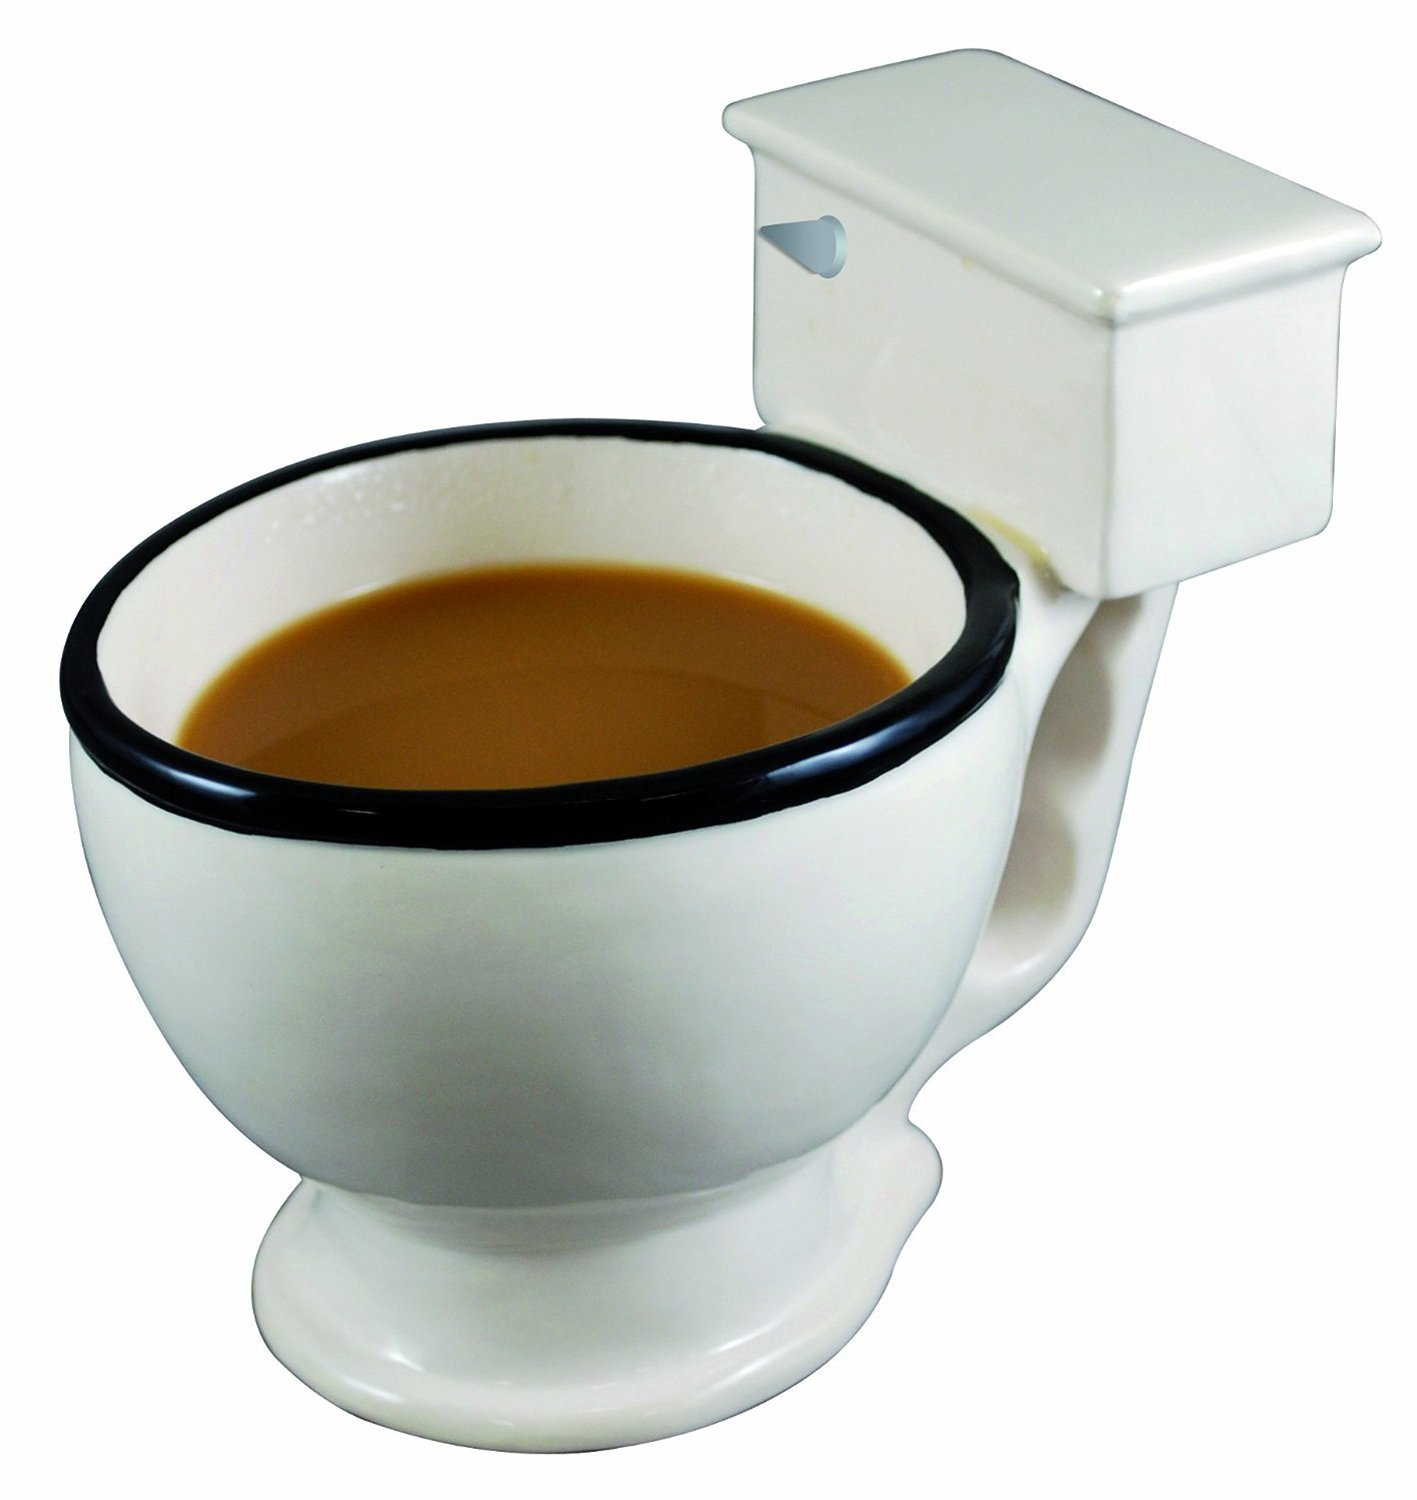 Mug That Says Coffee Coffee Tea Mug Shaped Like A Toilet Moochly